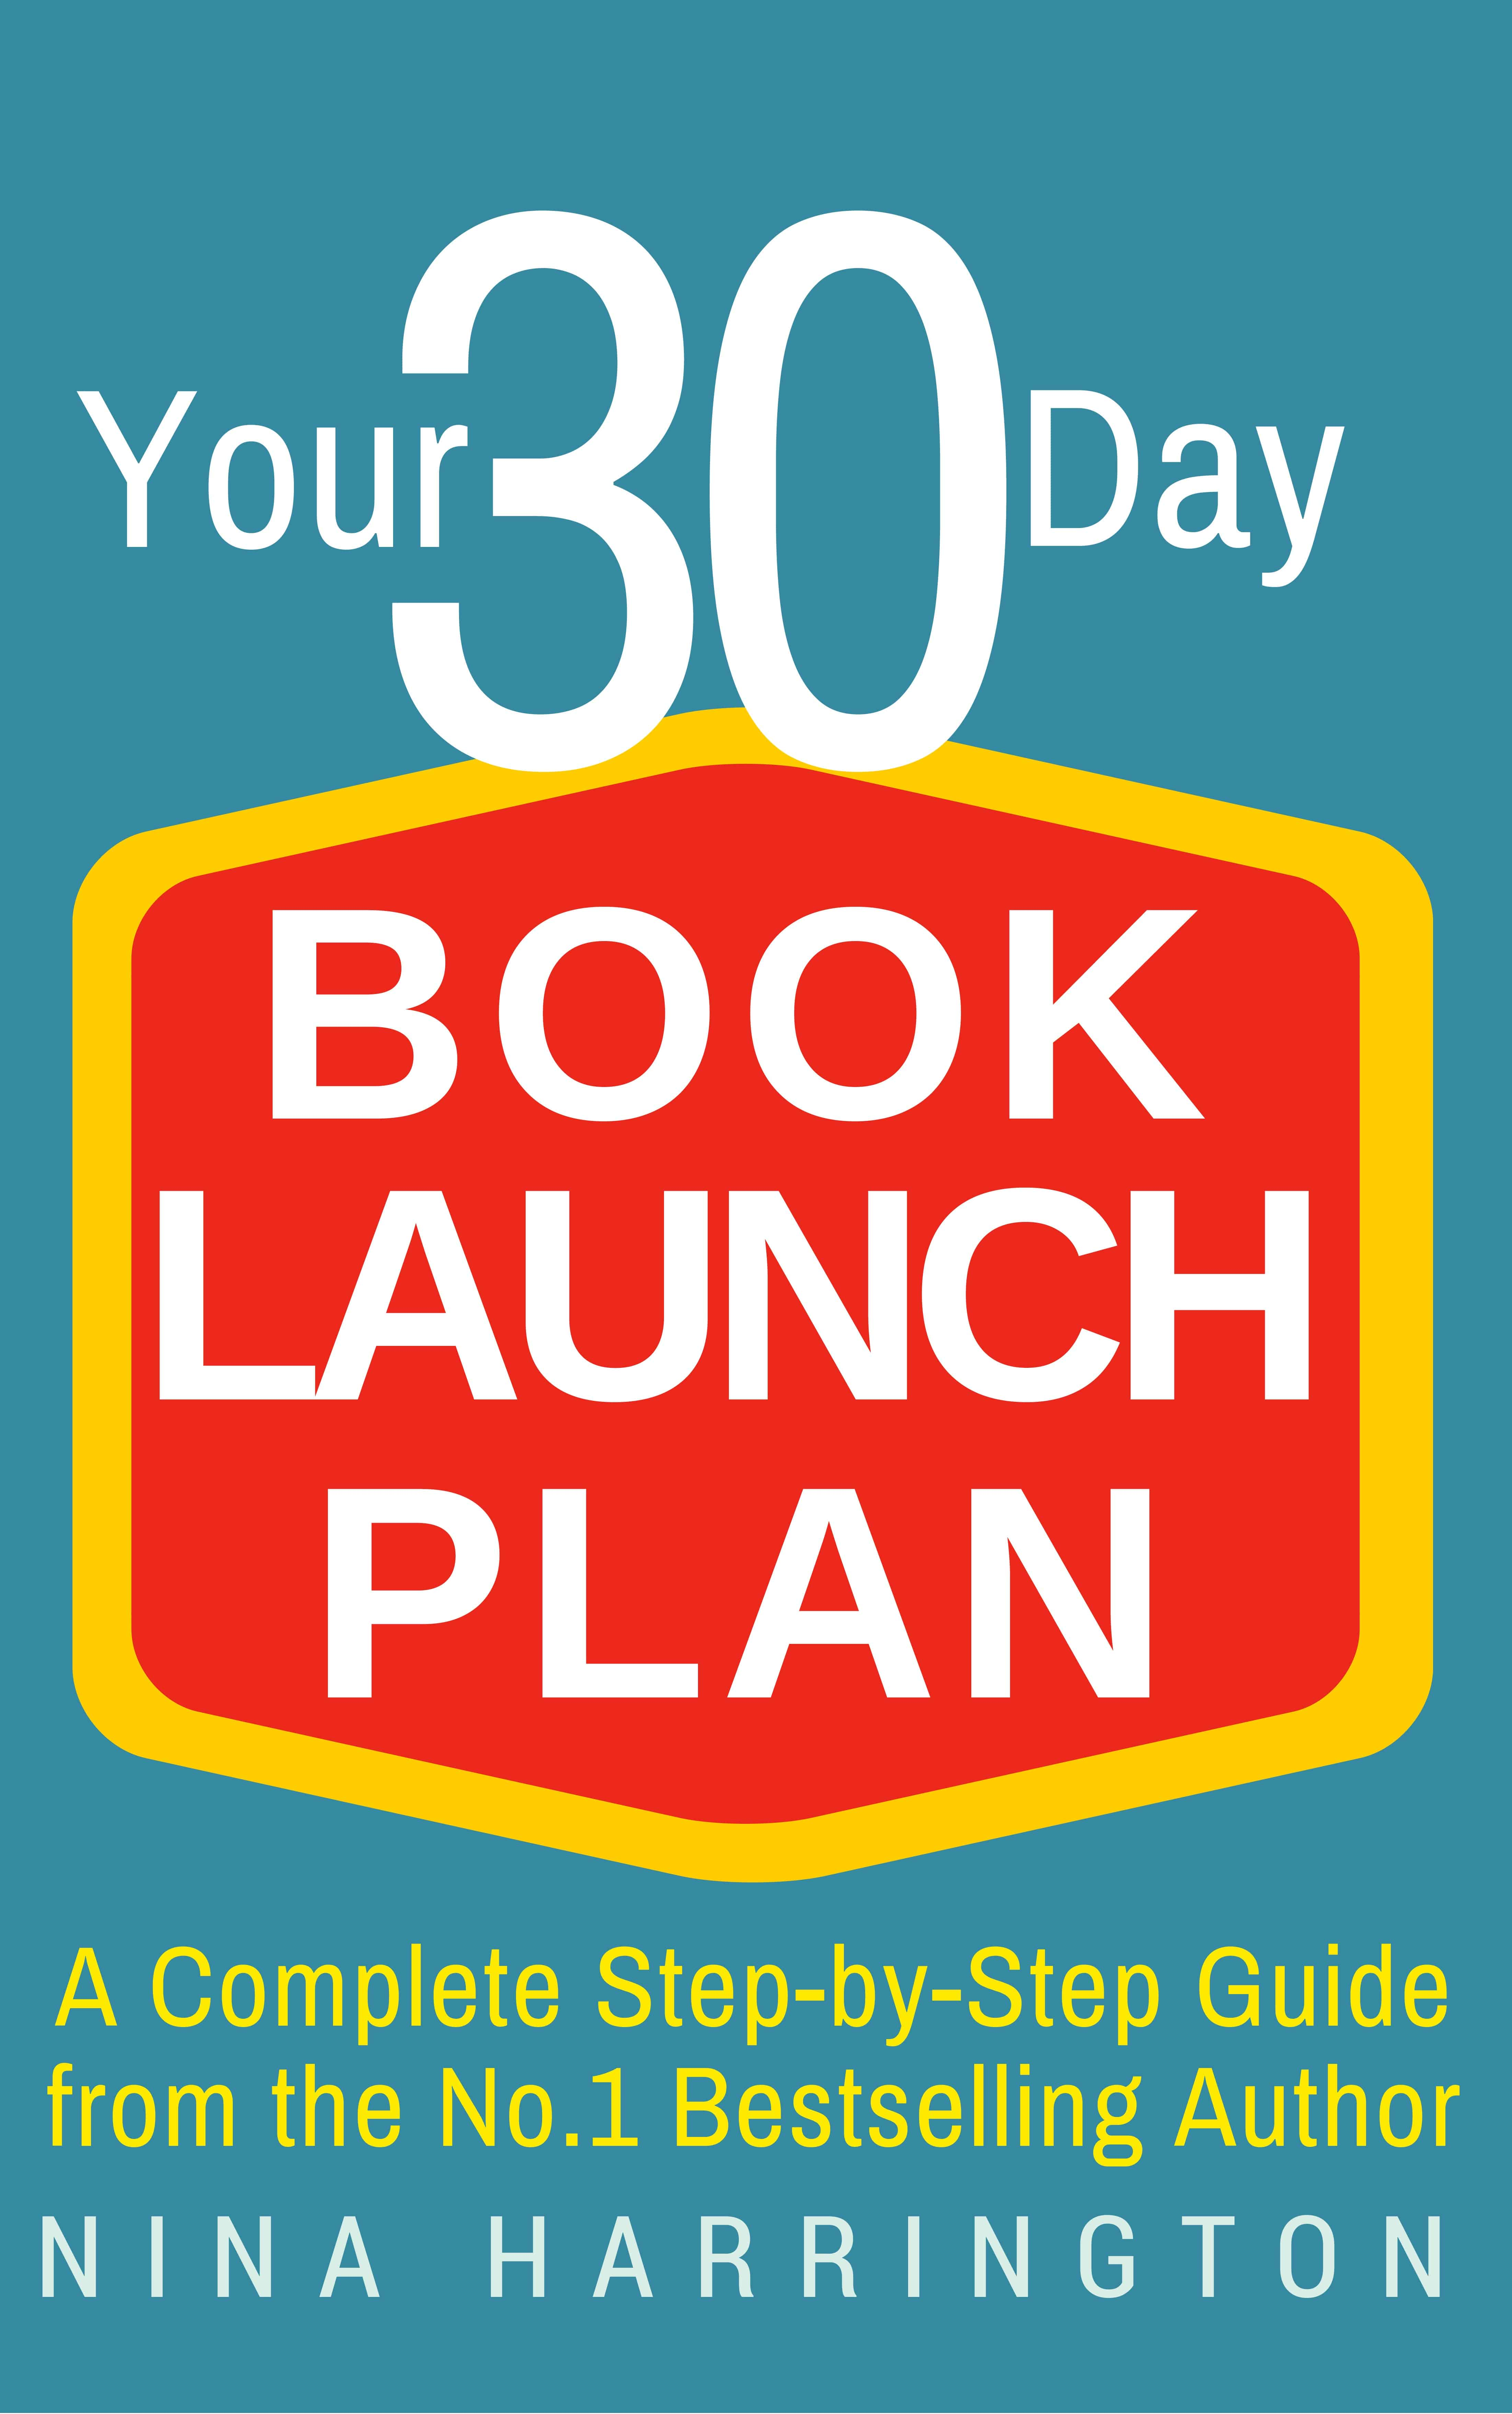 30 DAY BOOK LAUNCH plan-cover